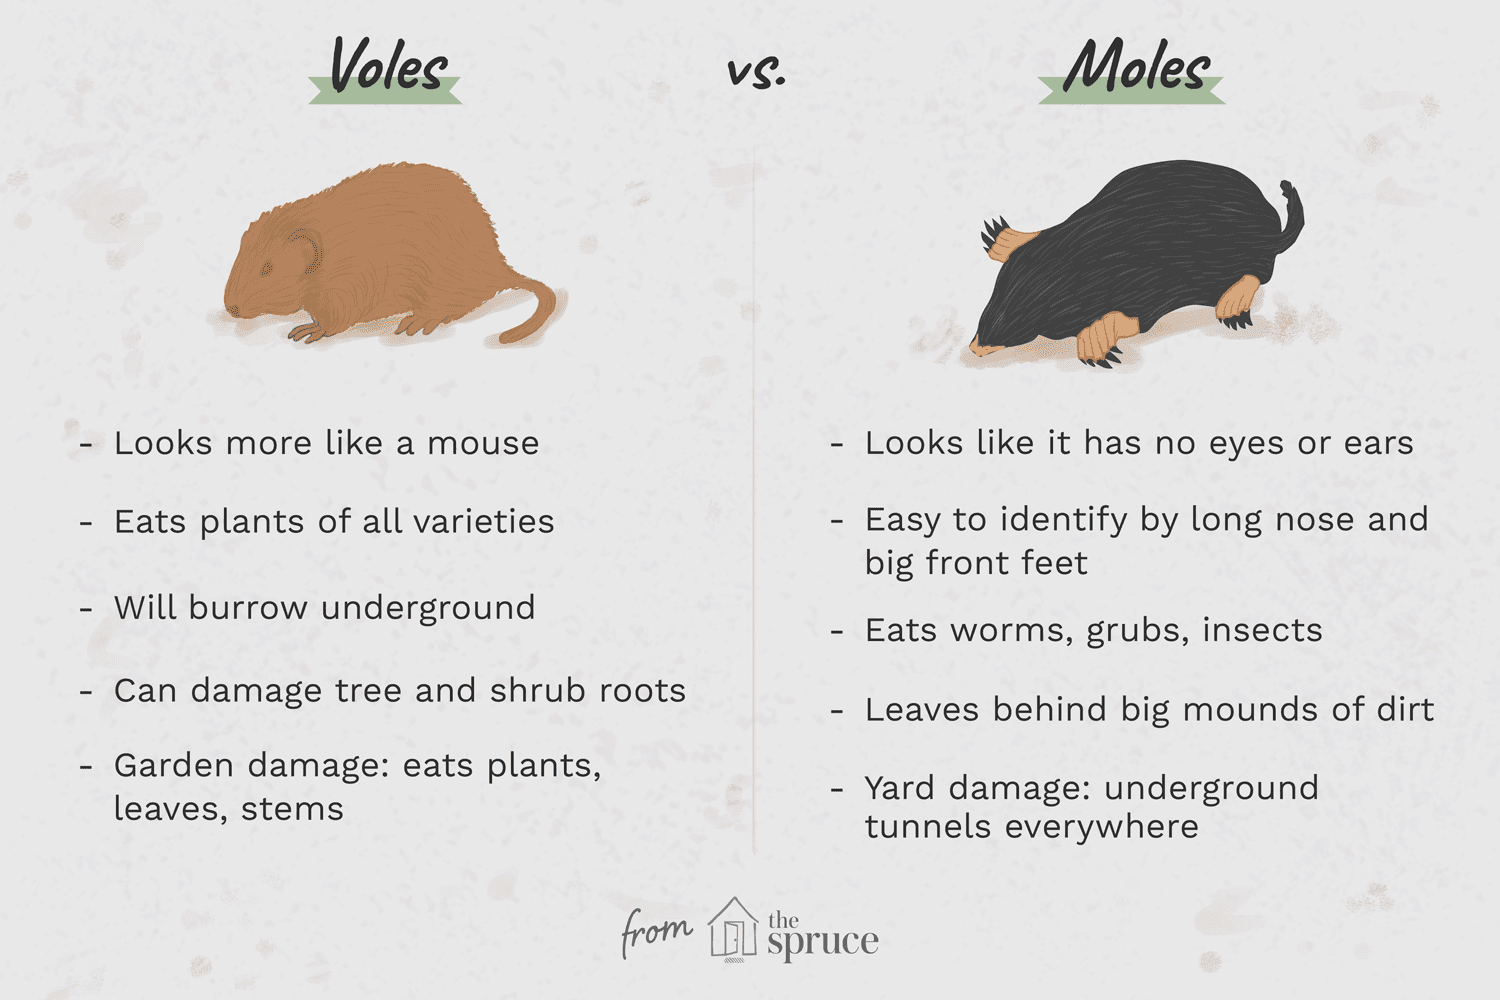 What Is A Vole As Compared To A Mole